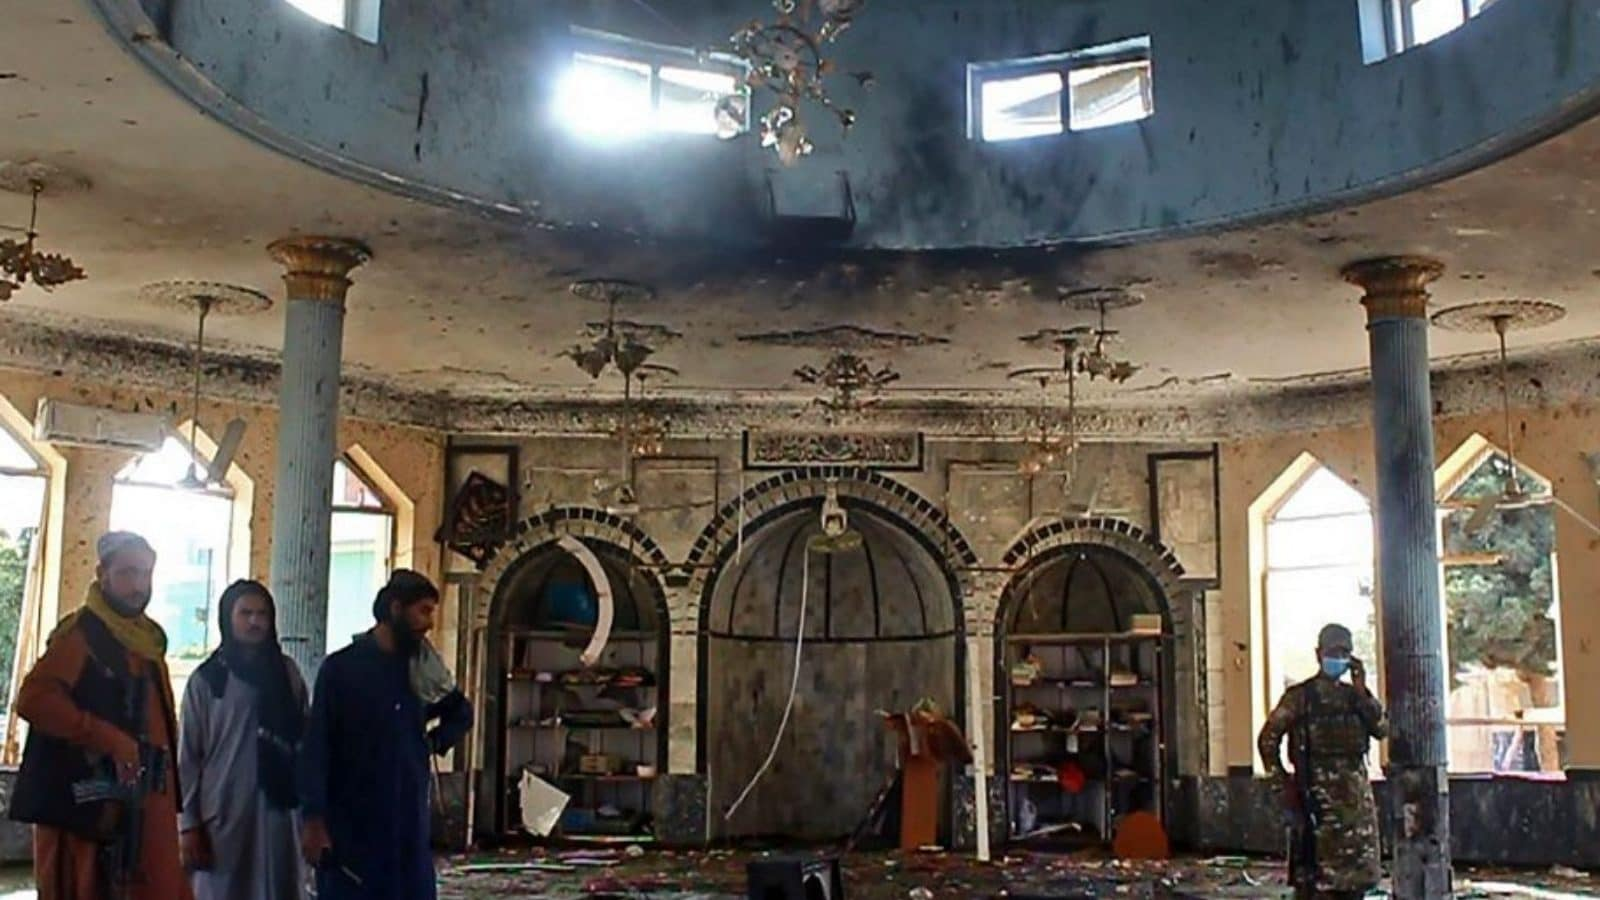 Image Islamic State Claims Killing 300 Shia Worshippers in Afghan Mosque, Sources Say Numbers 'Exaggerated' - News18